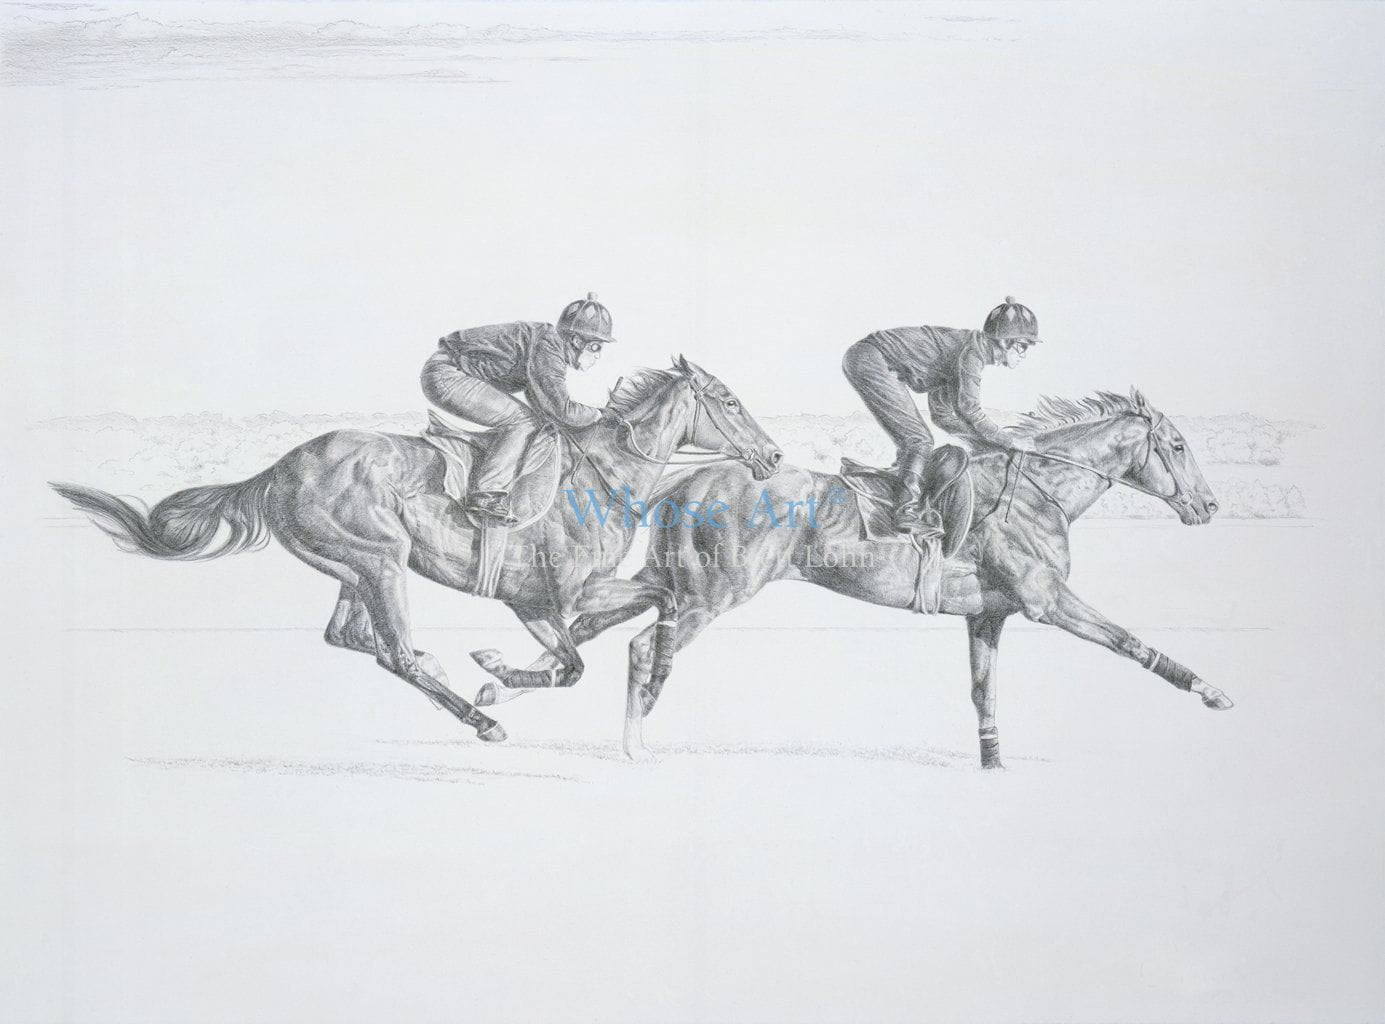 Black and white horse art drawing of racehorses galloping together in training. Drawn in pencil, the lead horse is a grey.